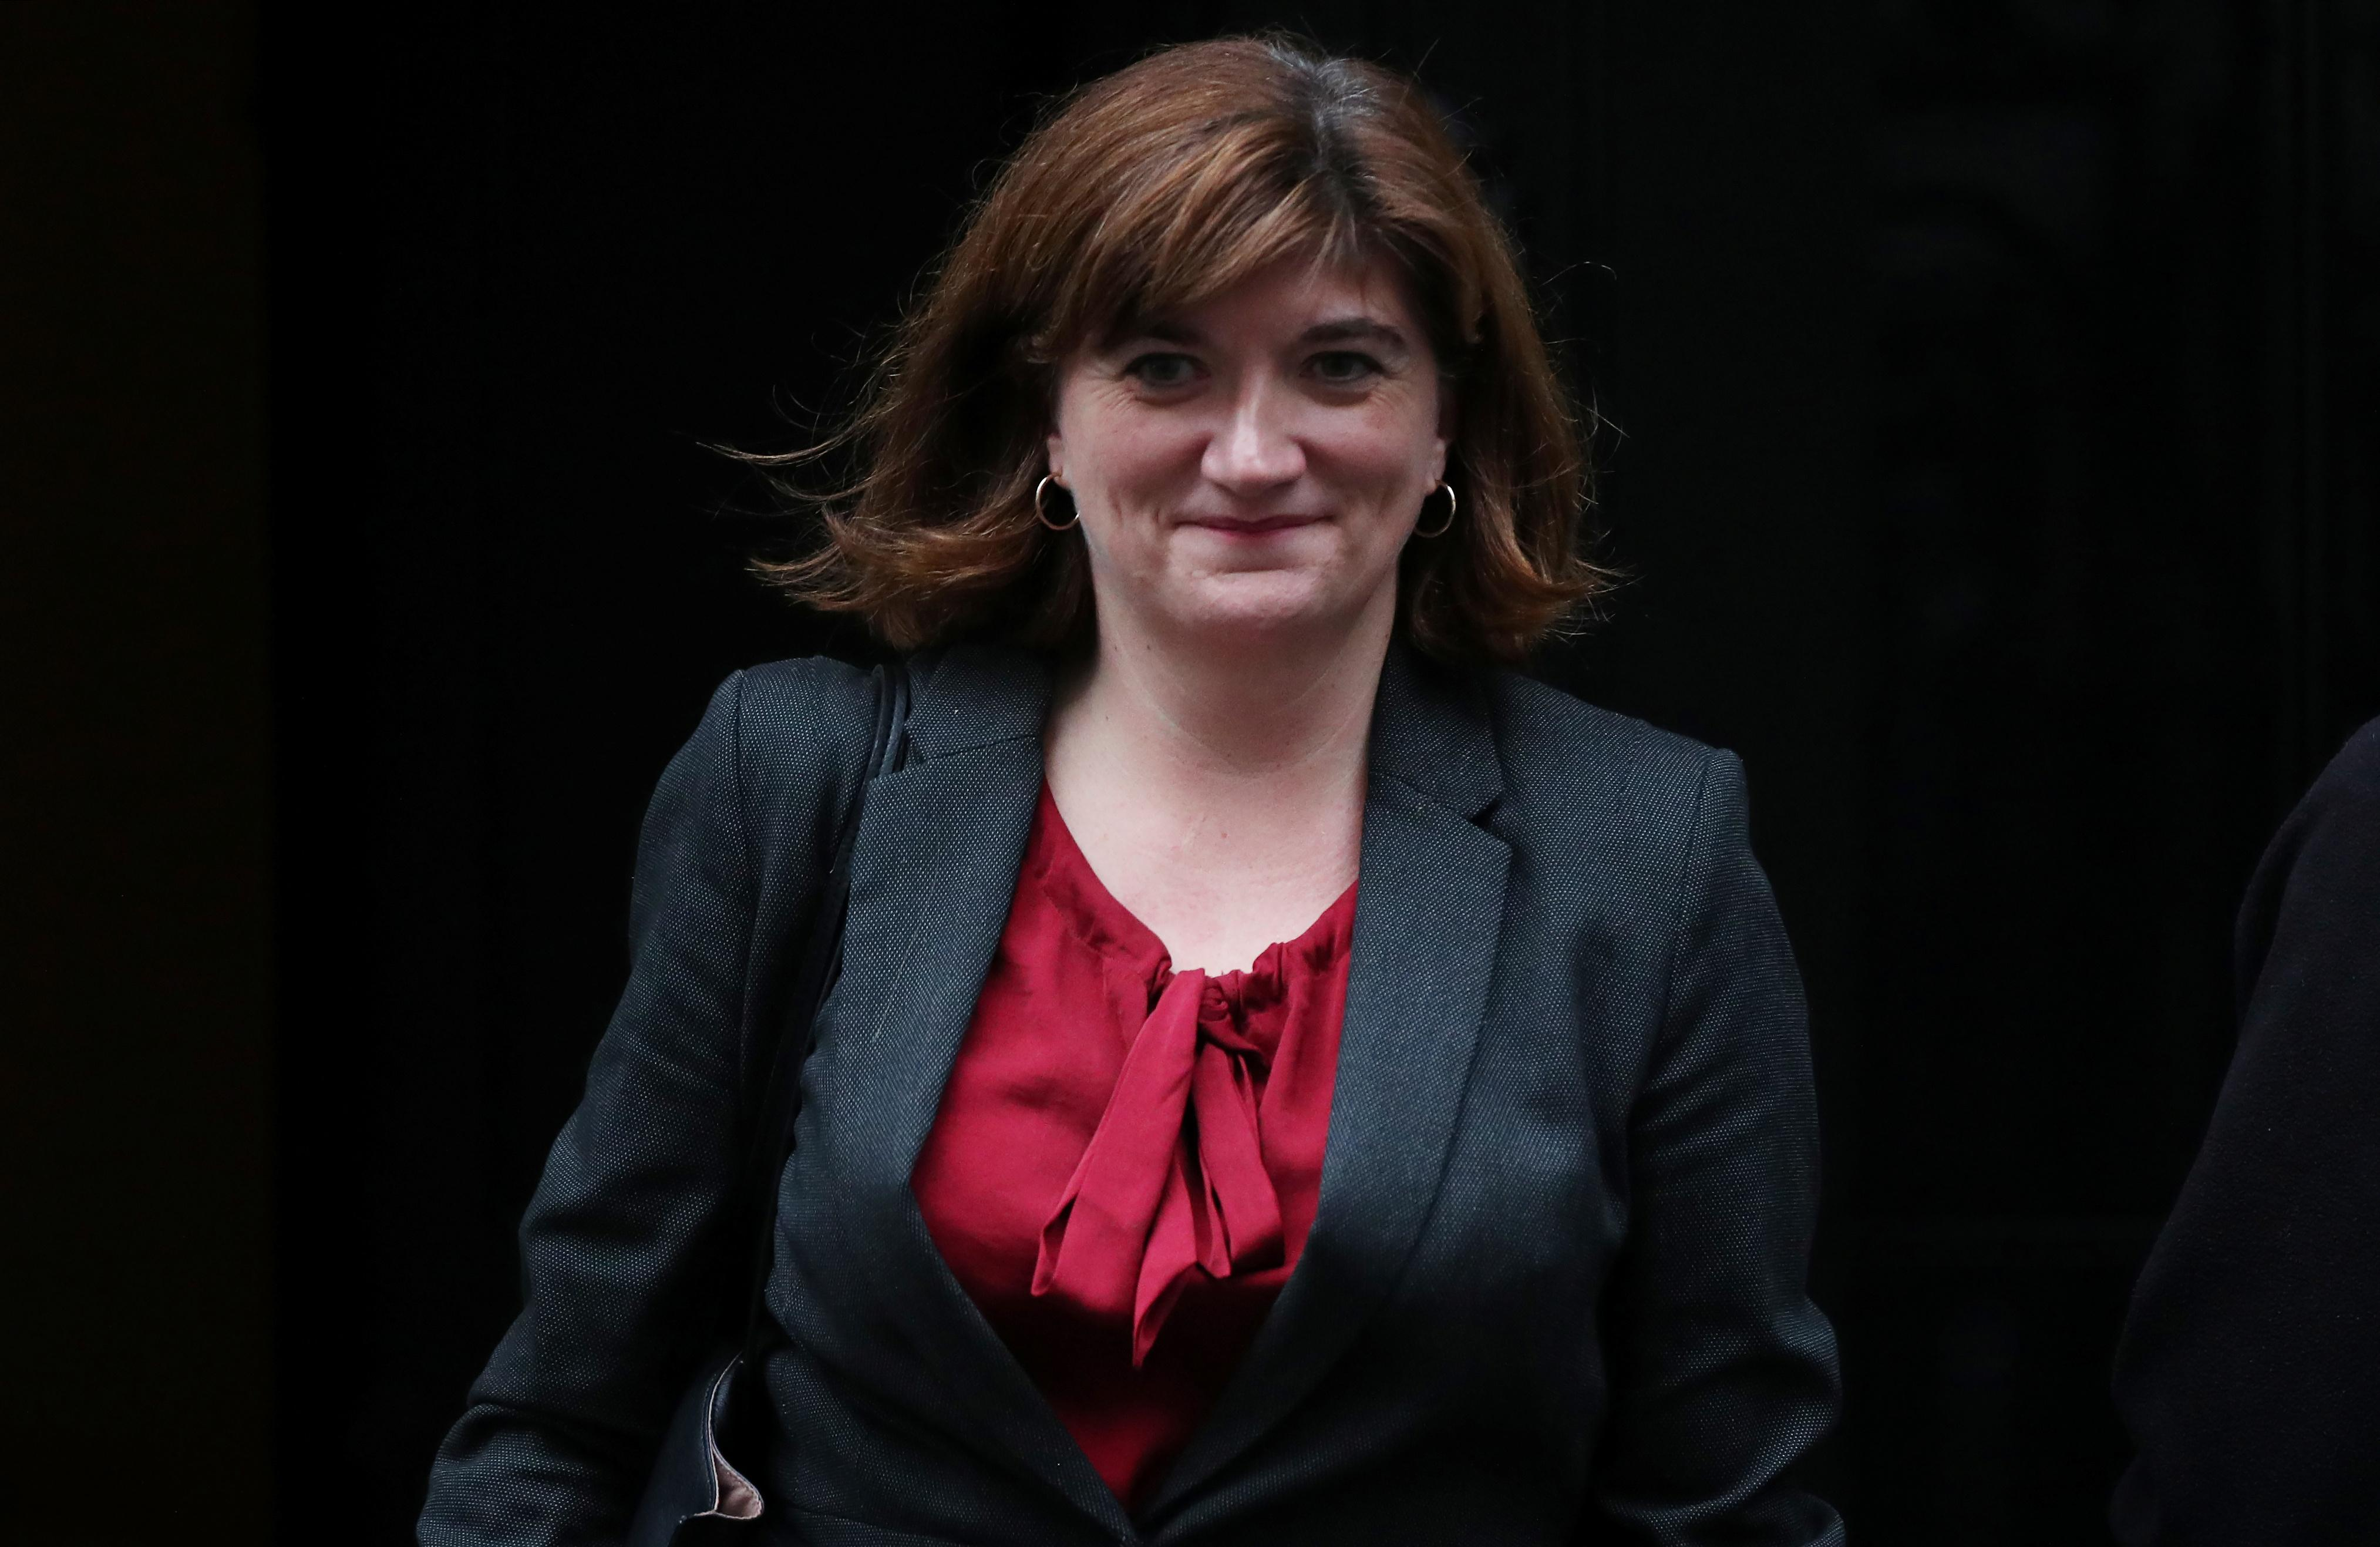 UK minister says concerned about election interference after leak...